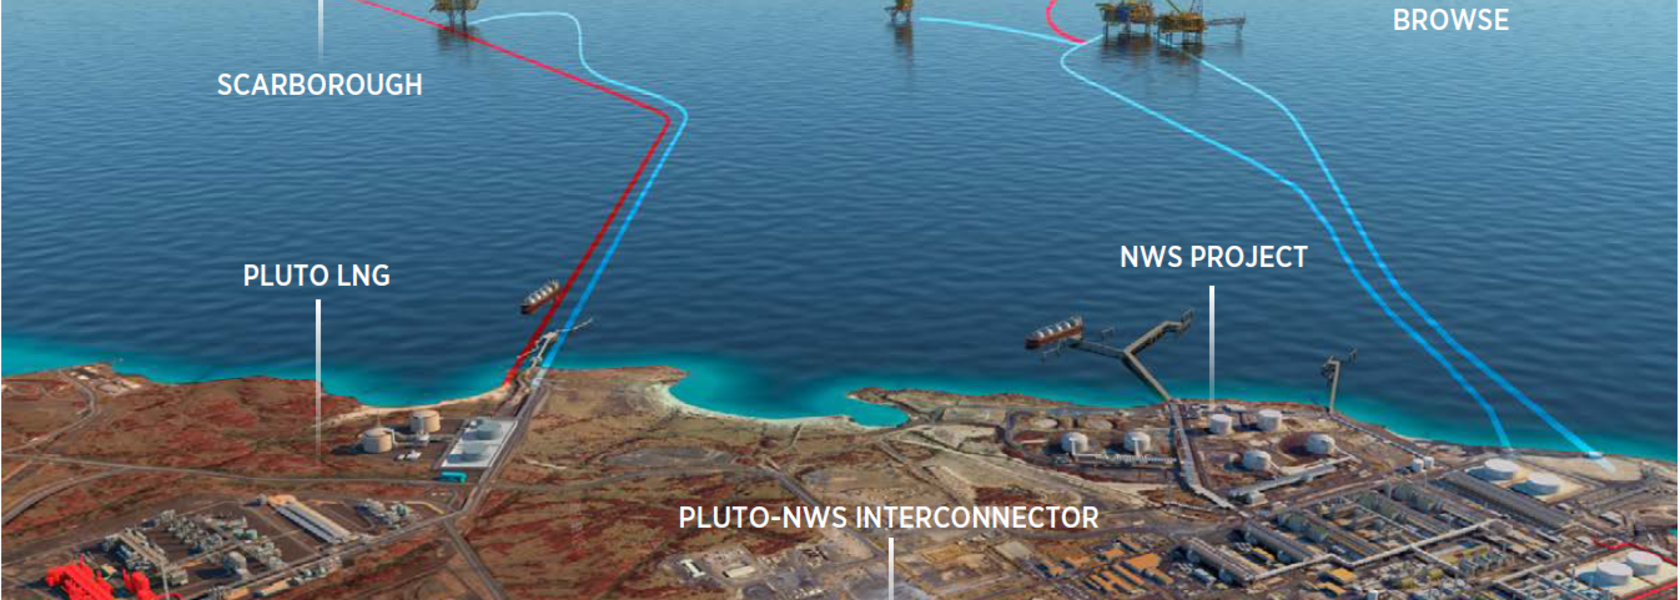 Woodside makes FID on Pluto-NWS pipeline